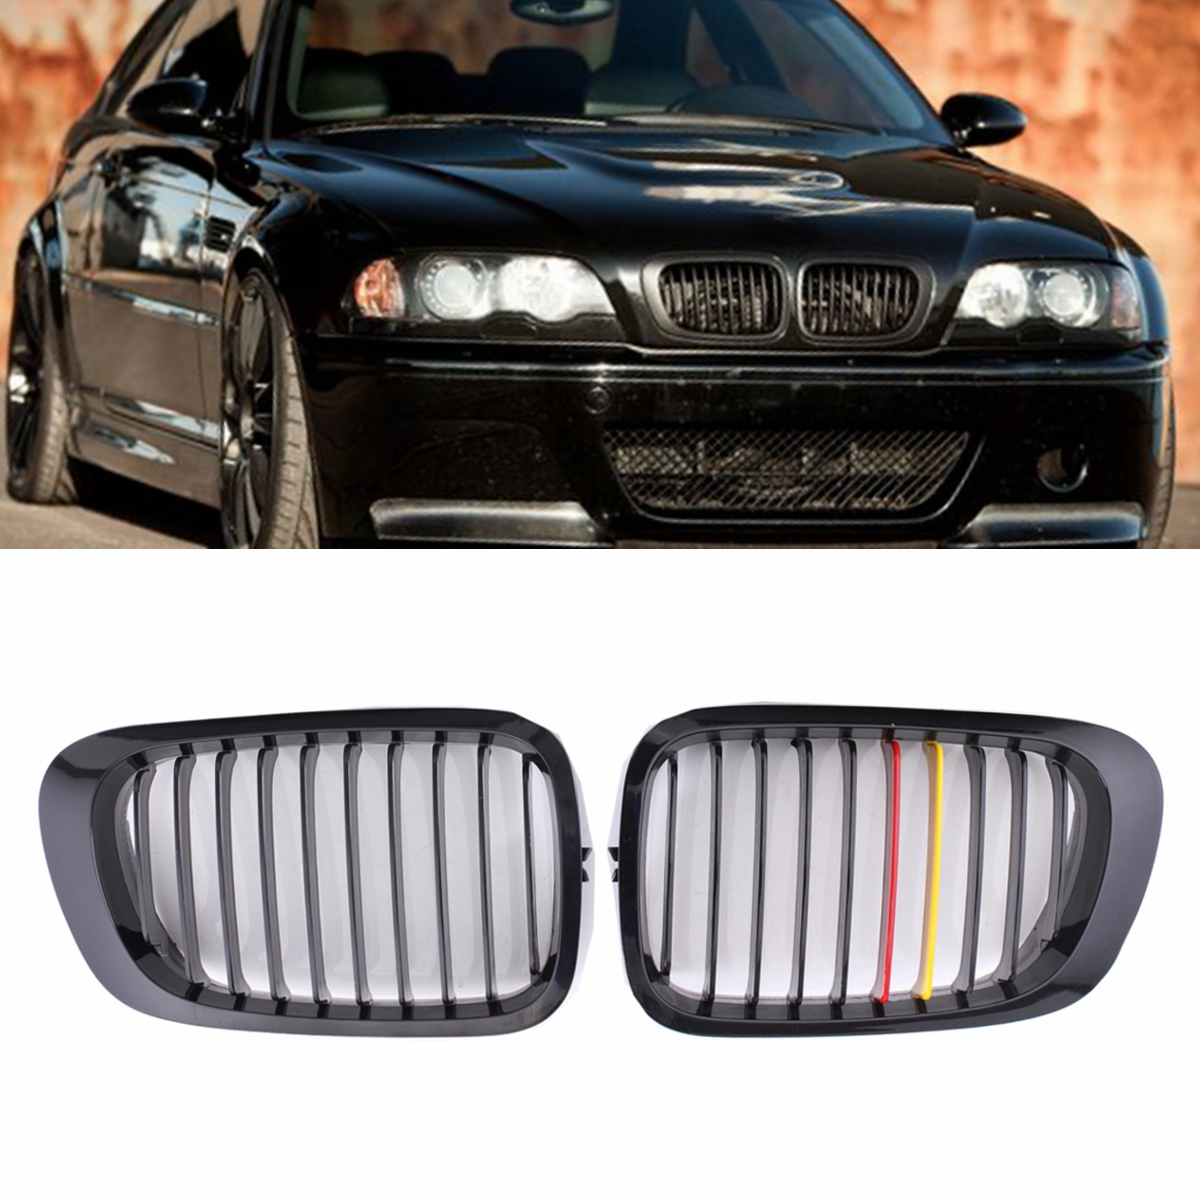 Pair Chrome Car Front Kidney Grille Grill For <font><b>BMW</b></font> E46 <font><b>325Ci</b></font> 330Ci 3-Series M3 2 Doors 1999 2000 2001 2002 2003 2004 2005 <font><b>2006</b></font> image